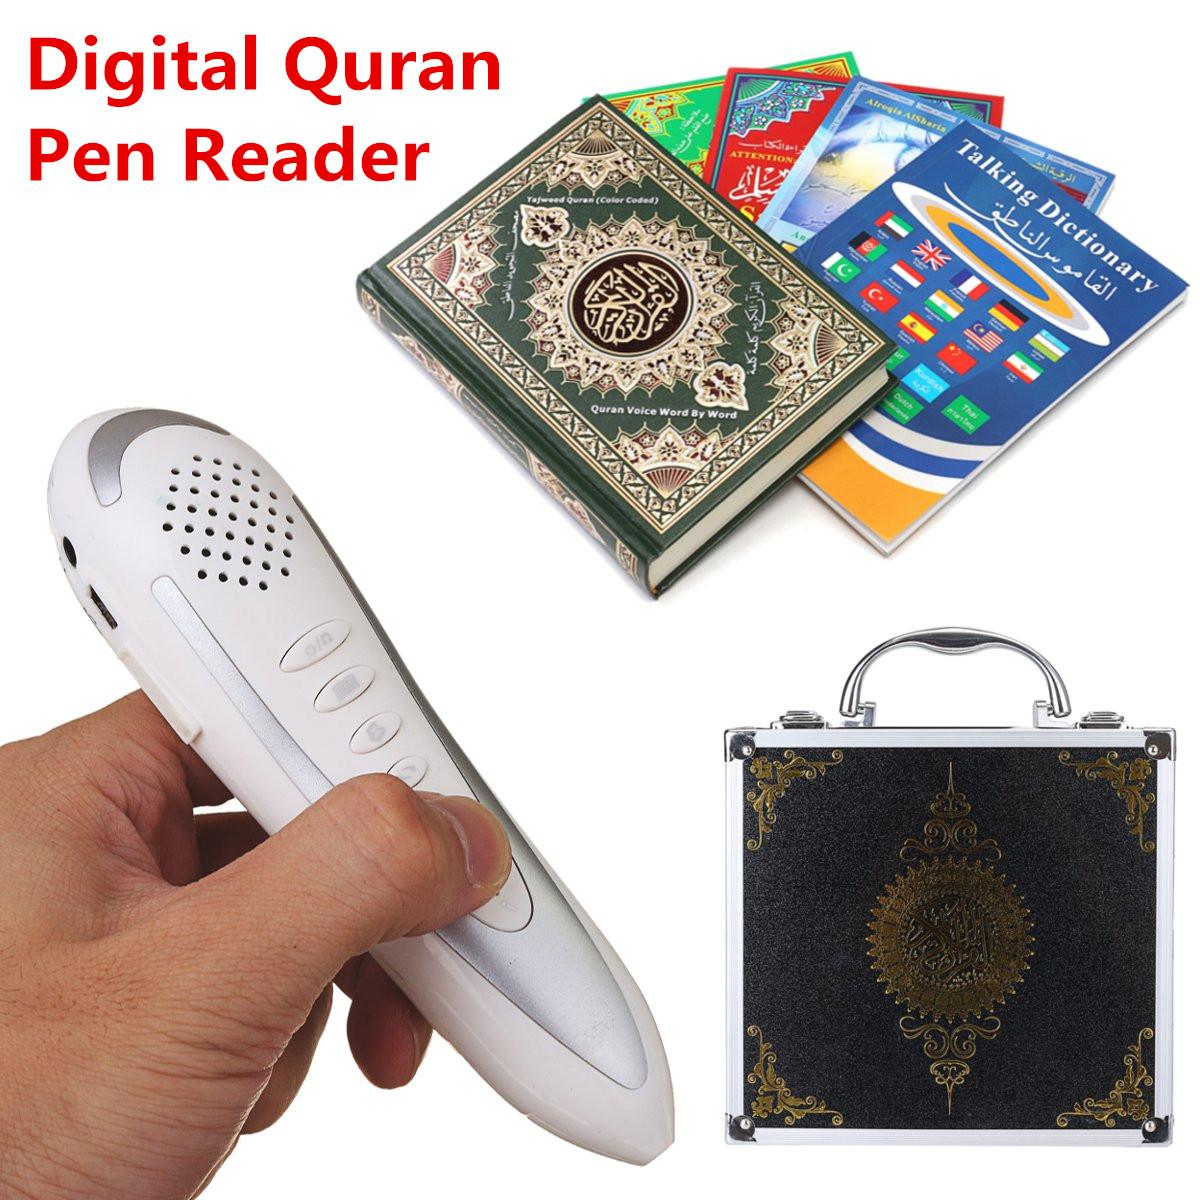 Newest Model F2 Digital Quran Pen Reader 8GB Metal Box Ramadan Gift for Muslims